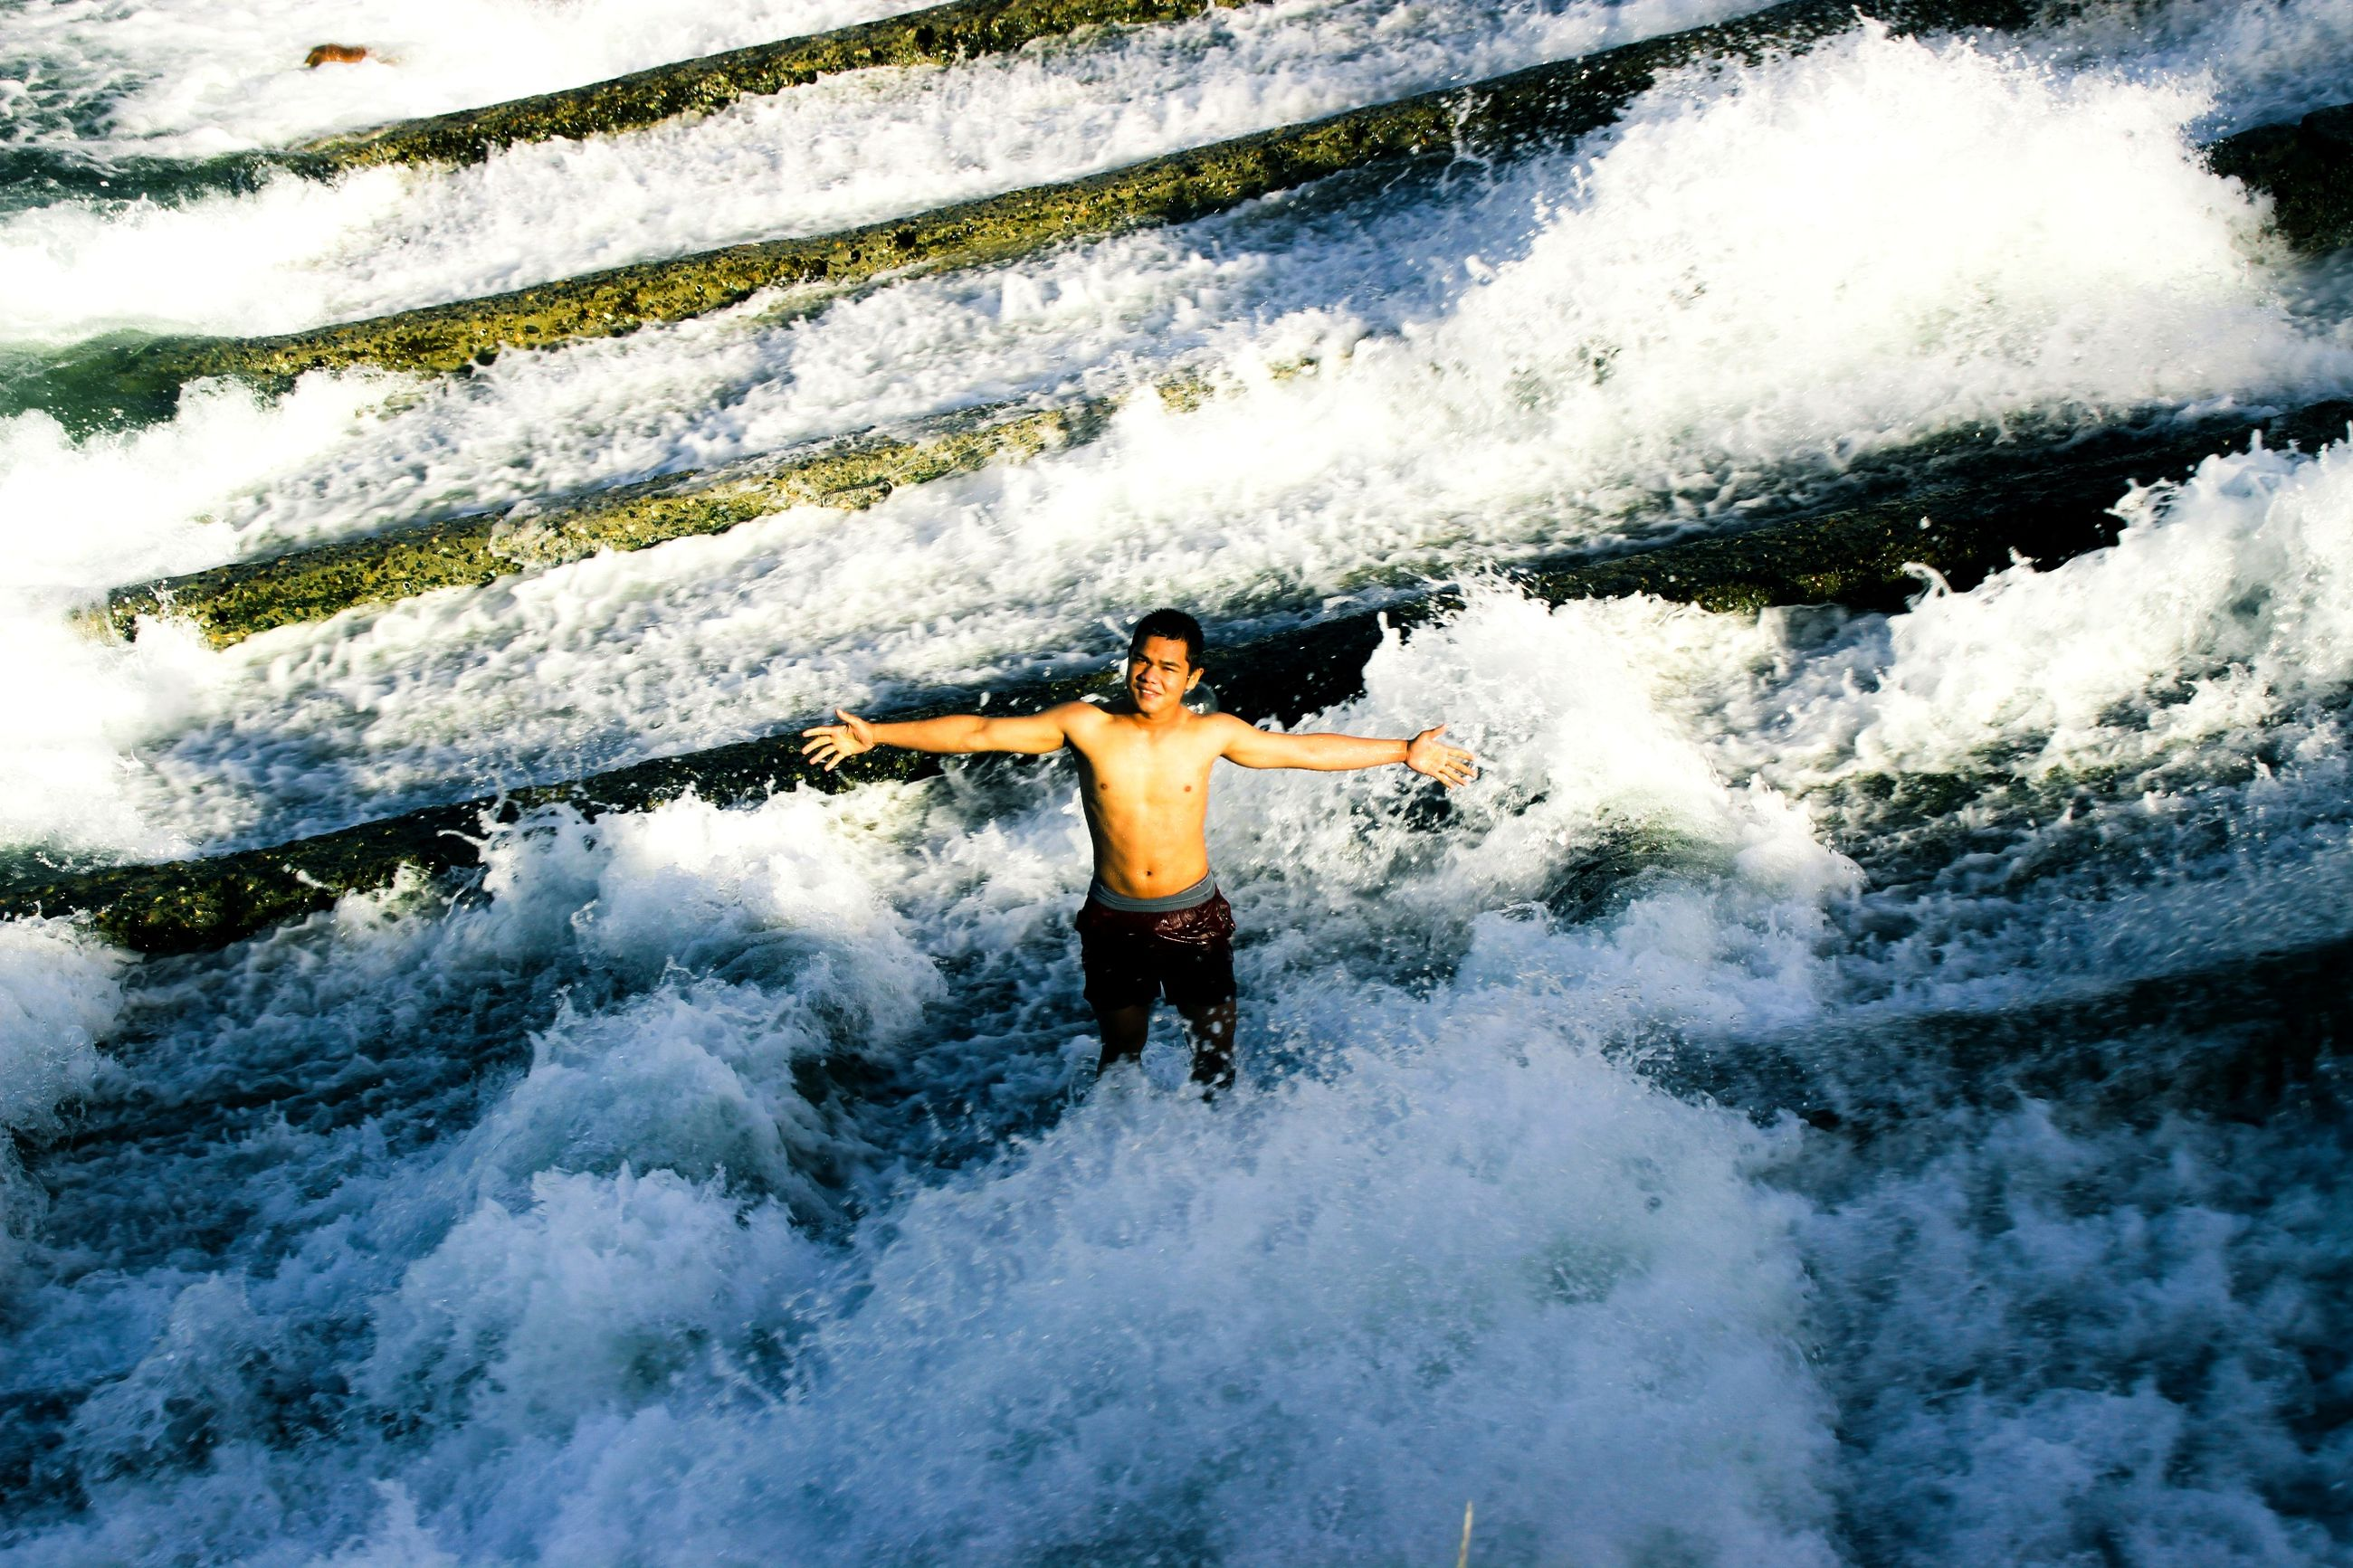 water, lifestyles, full length, leisure activity, season, winter, weather, standing, motion, cold temperature, high angle view, snow, splashing, enjoyment, surf, arms outstretched, waterfront, person